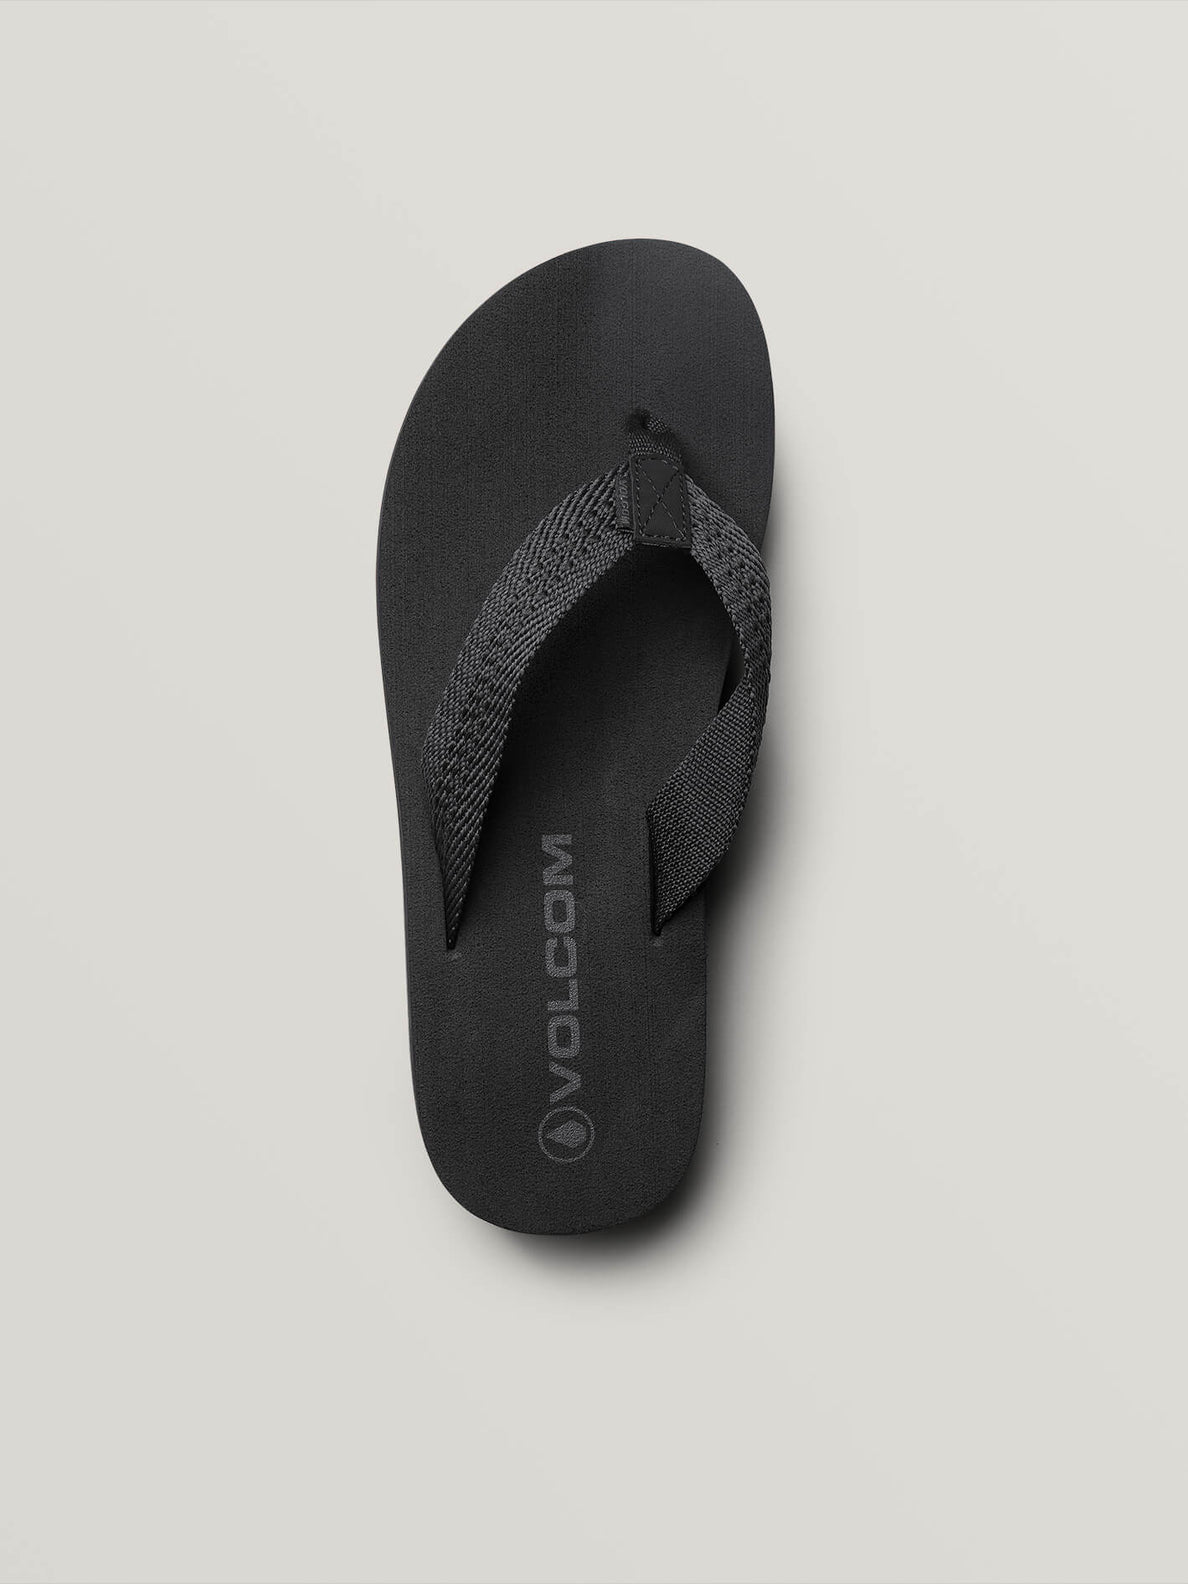 Daycation Sandals In Blackout, Alternate View